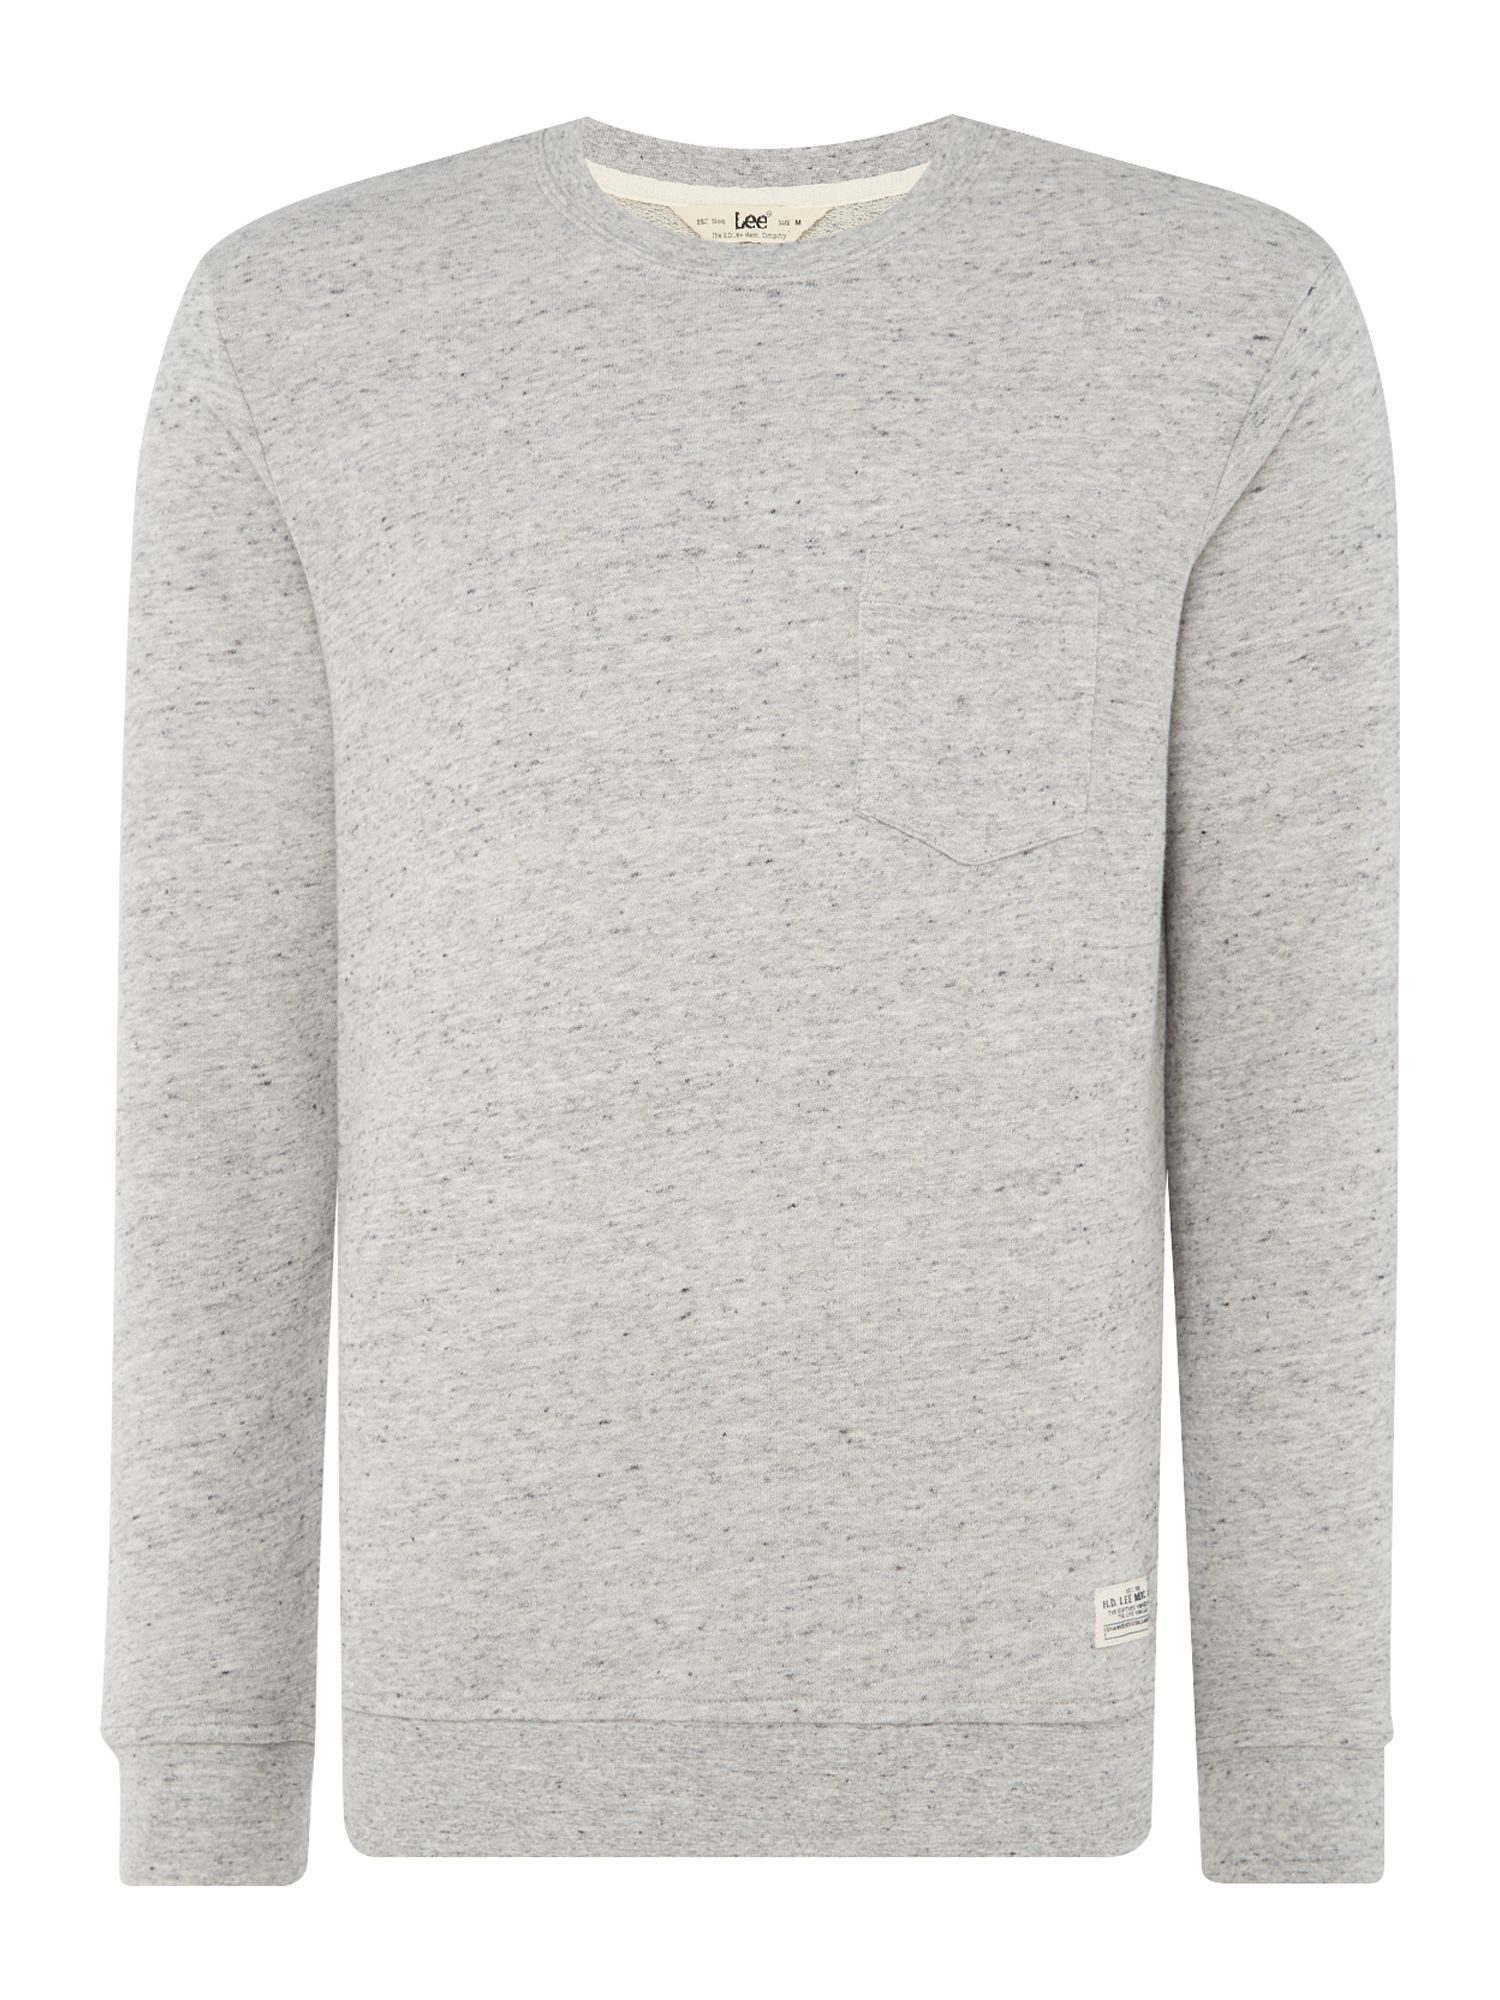 Men's Lee Grey Pocket Sweatshirt, Grey Marl